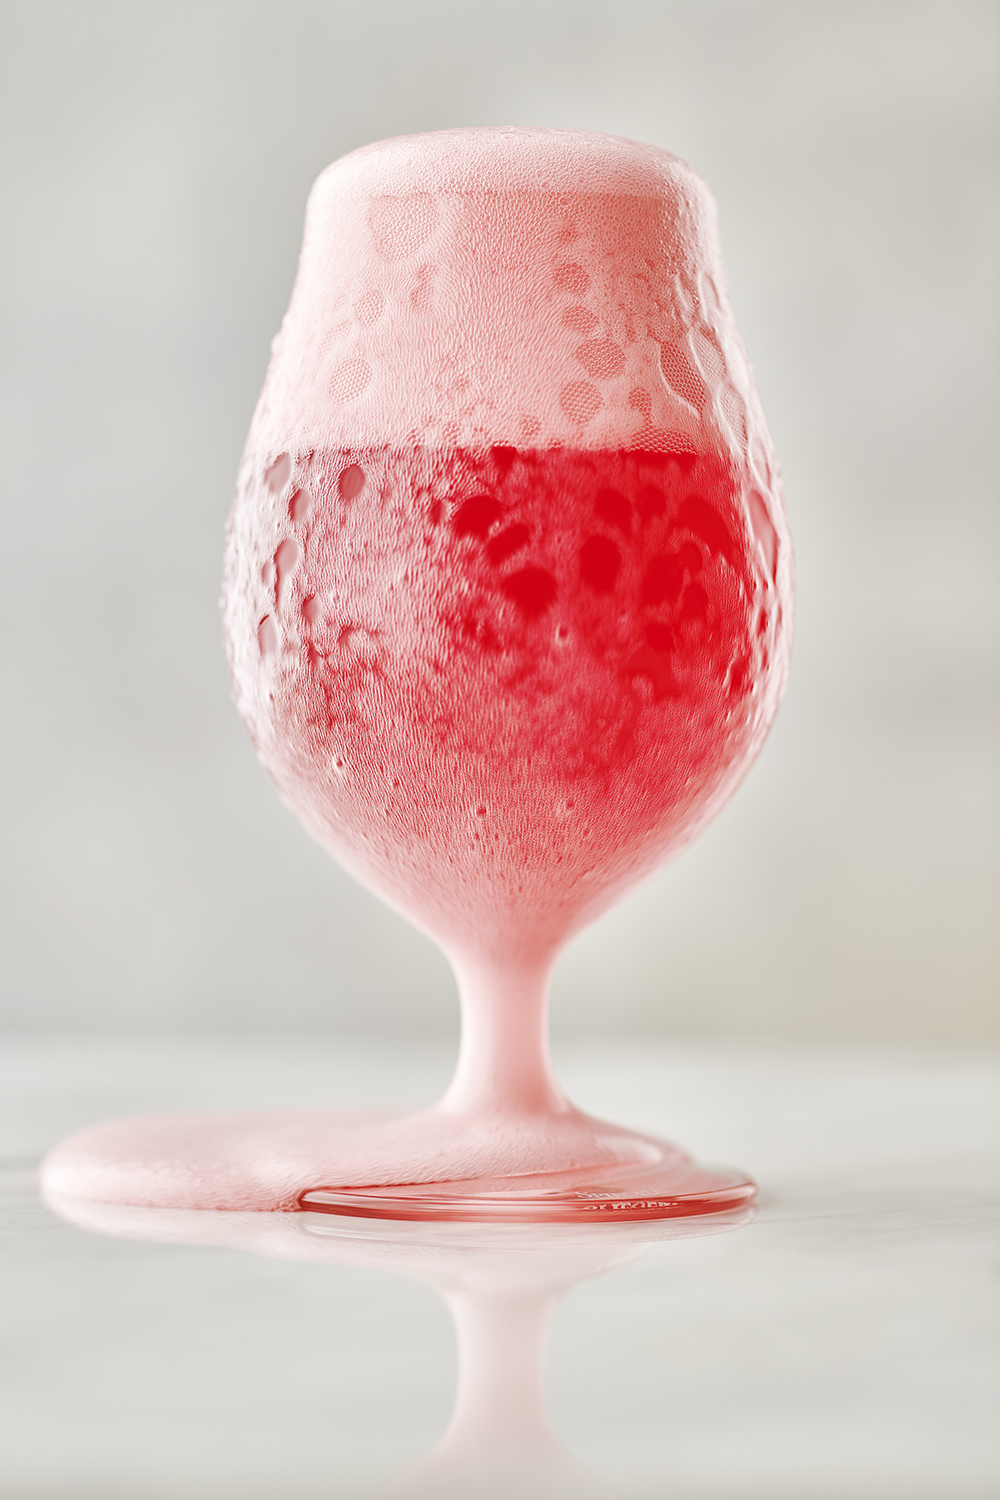 Overflowing Glass of Raspberry Beer